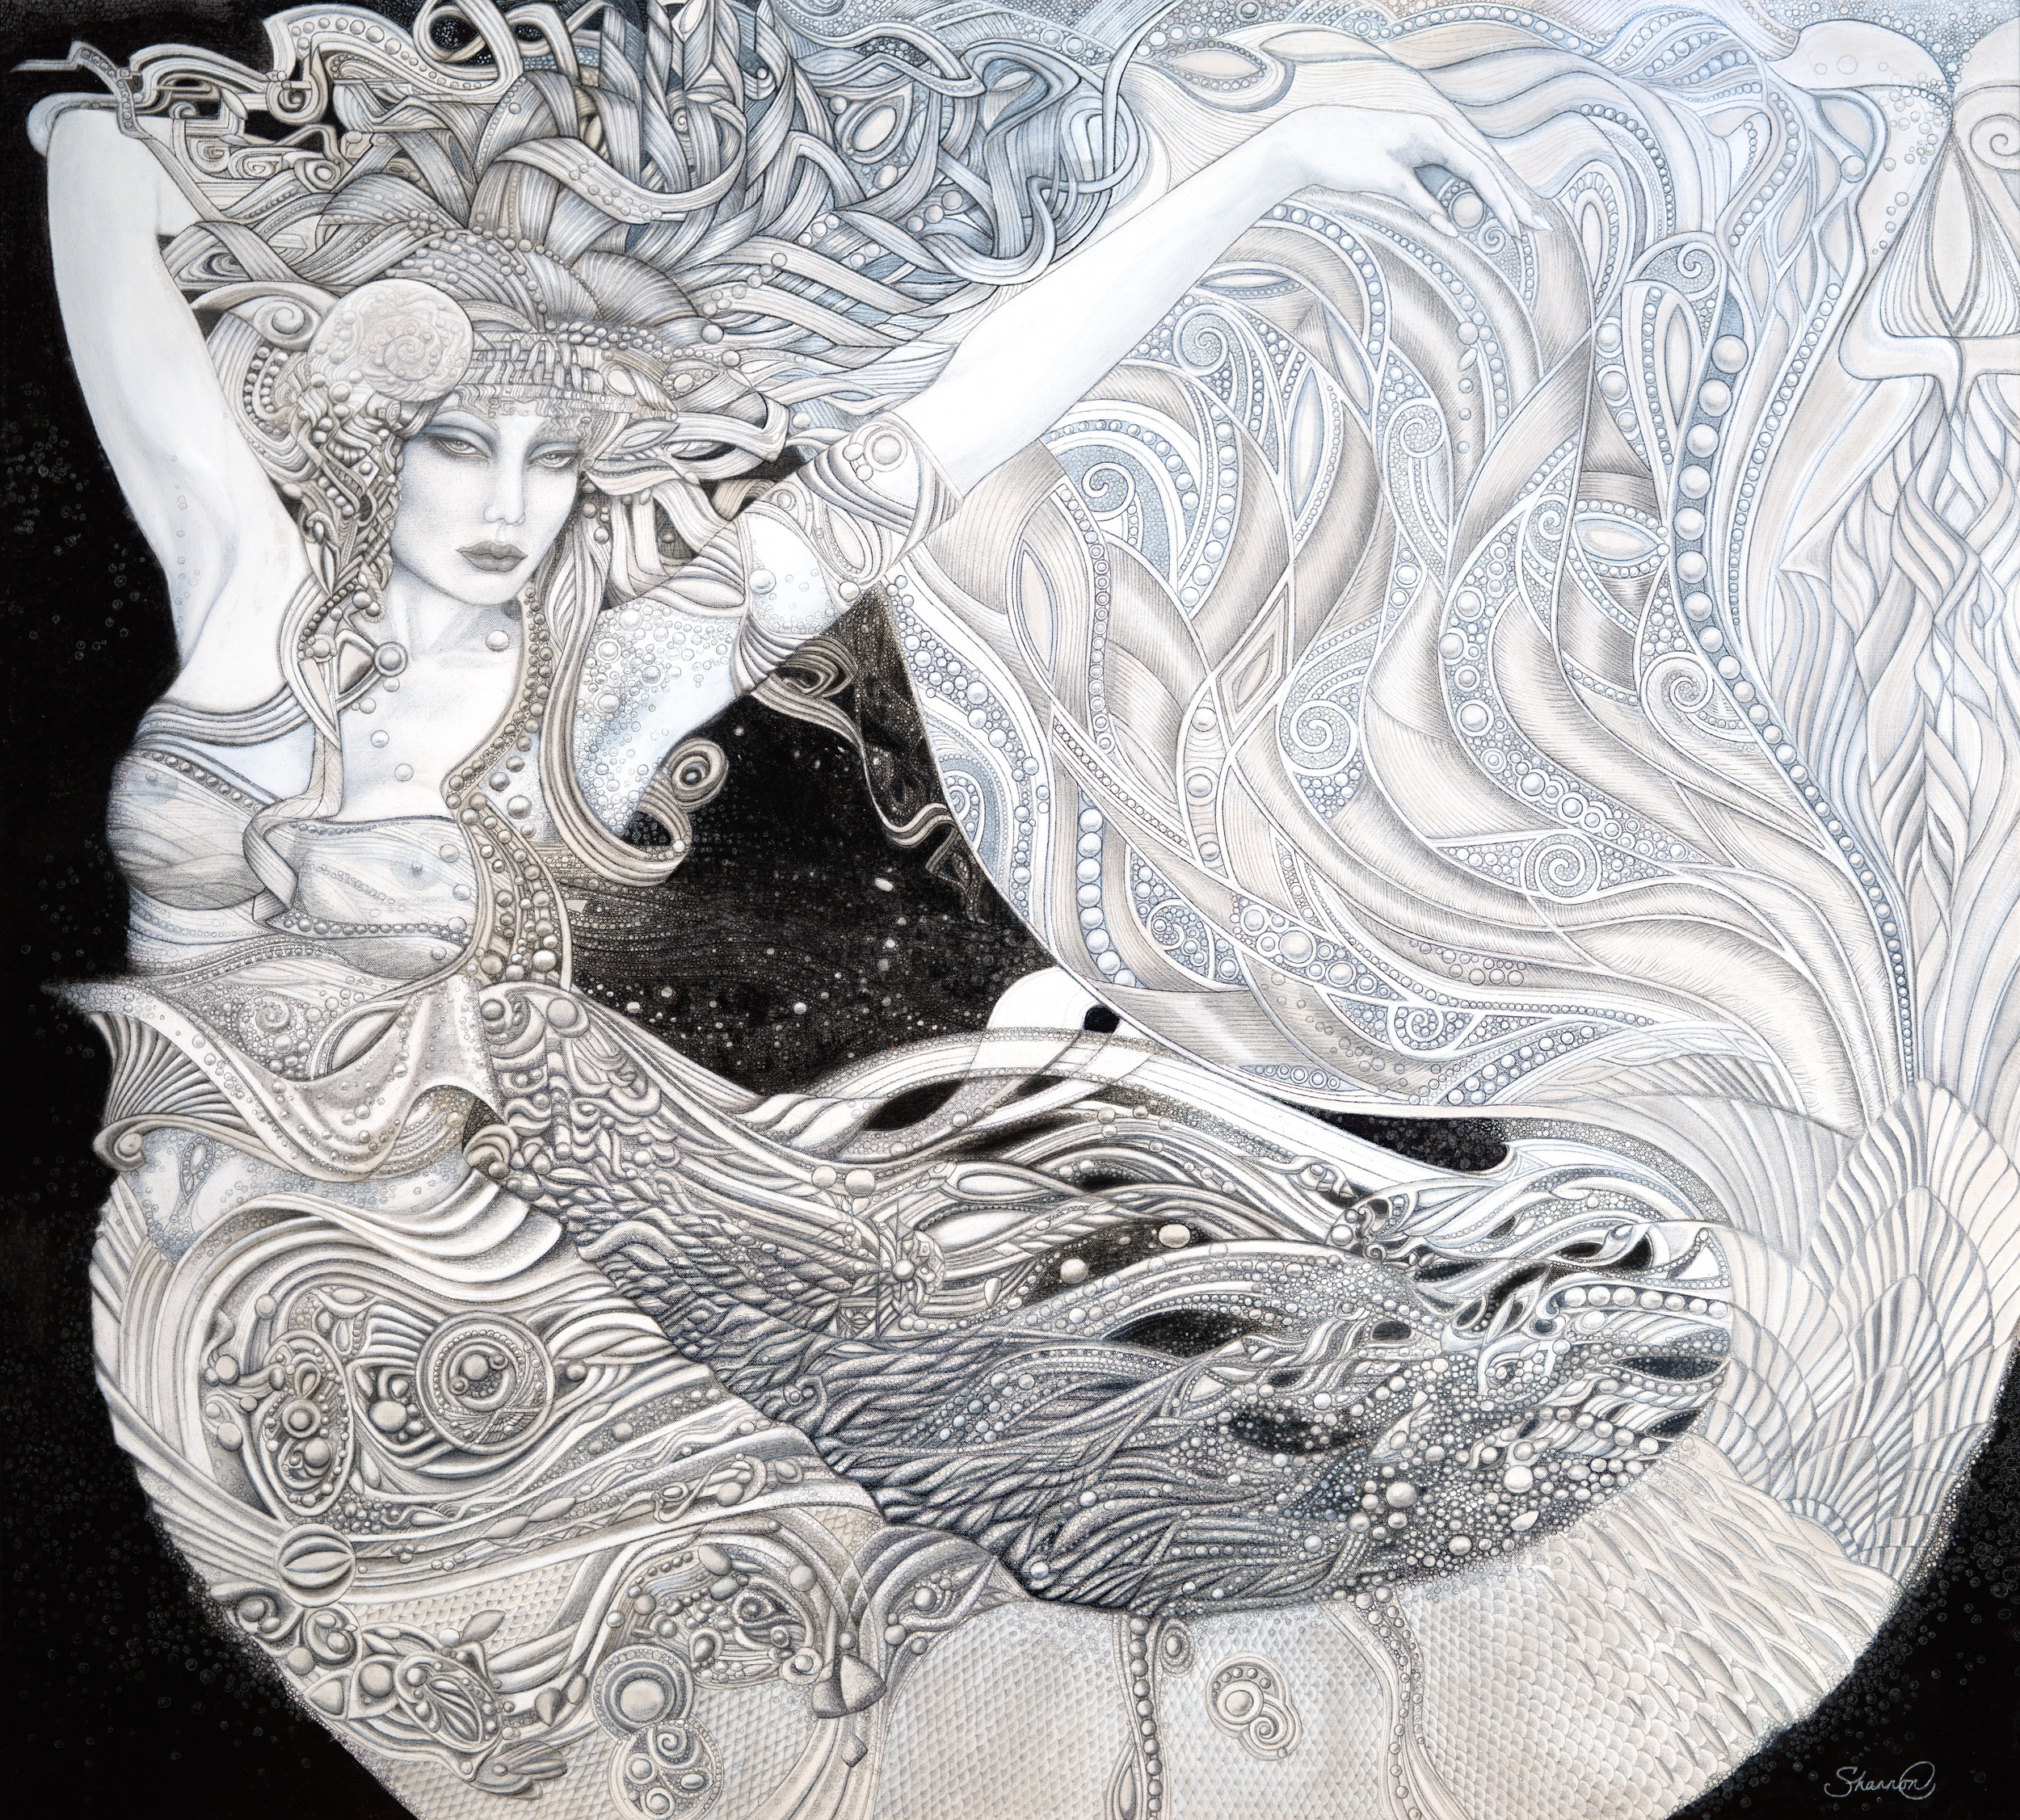 """lorelei - Dimensions: 53"""" x 47""""Carved 3/4"""" glassThe image here digitally combines the carved glass with the embellished hand print of the original glass work."""